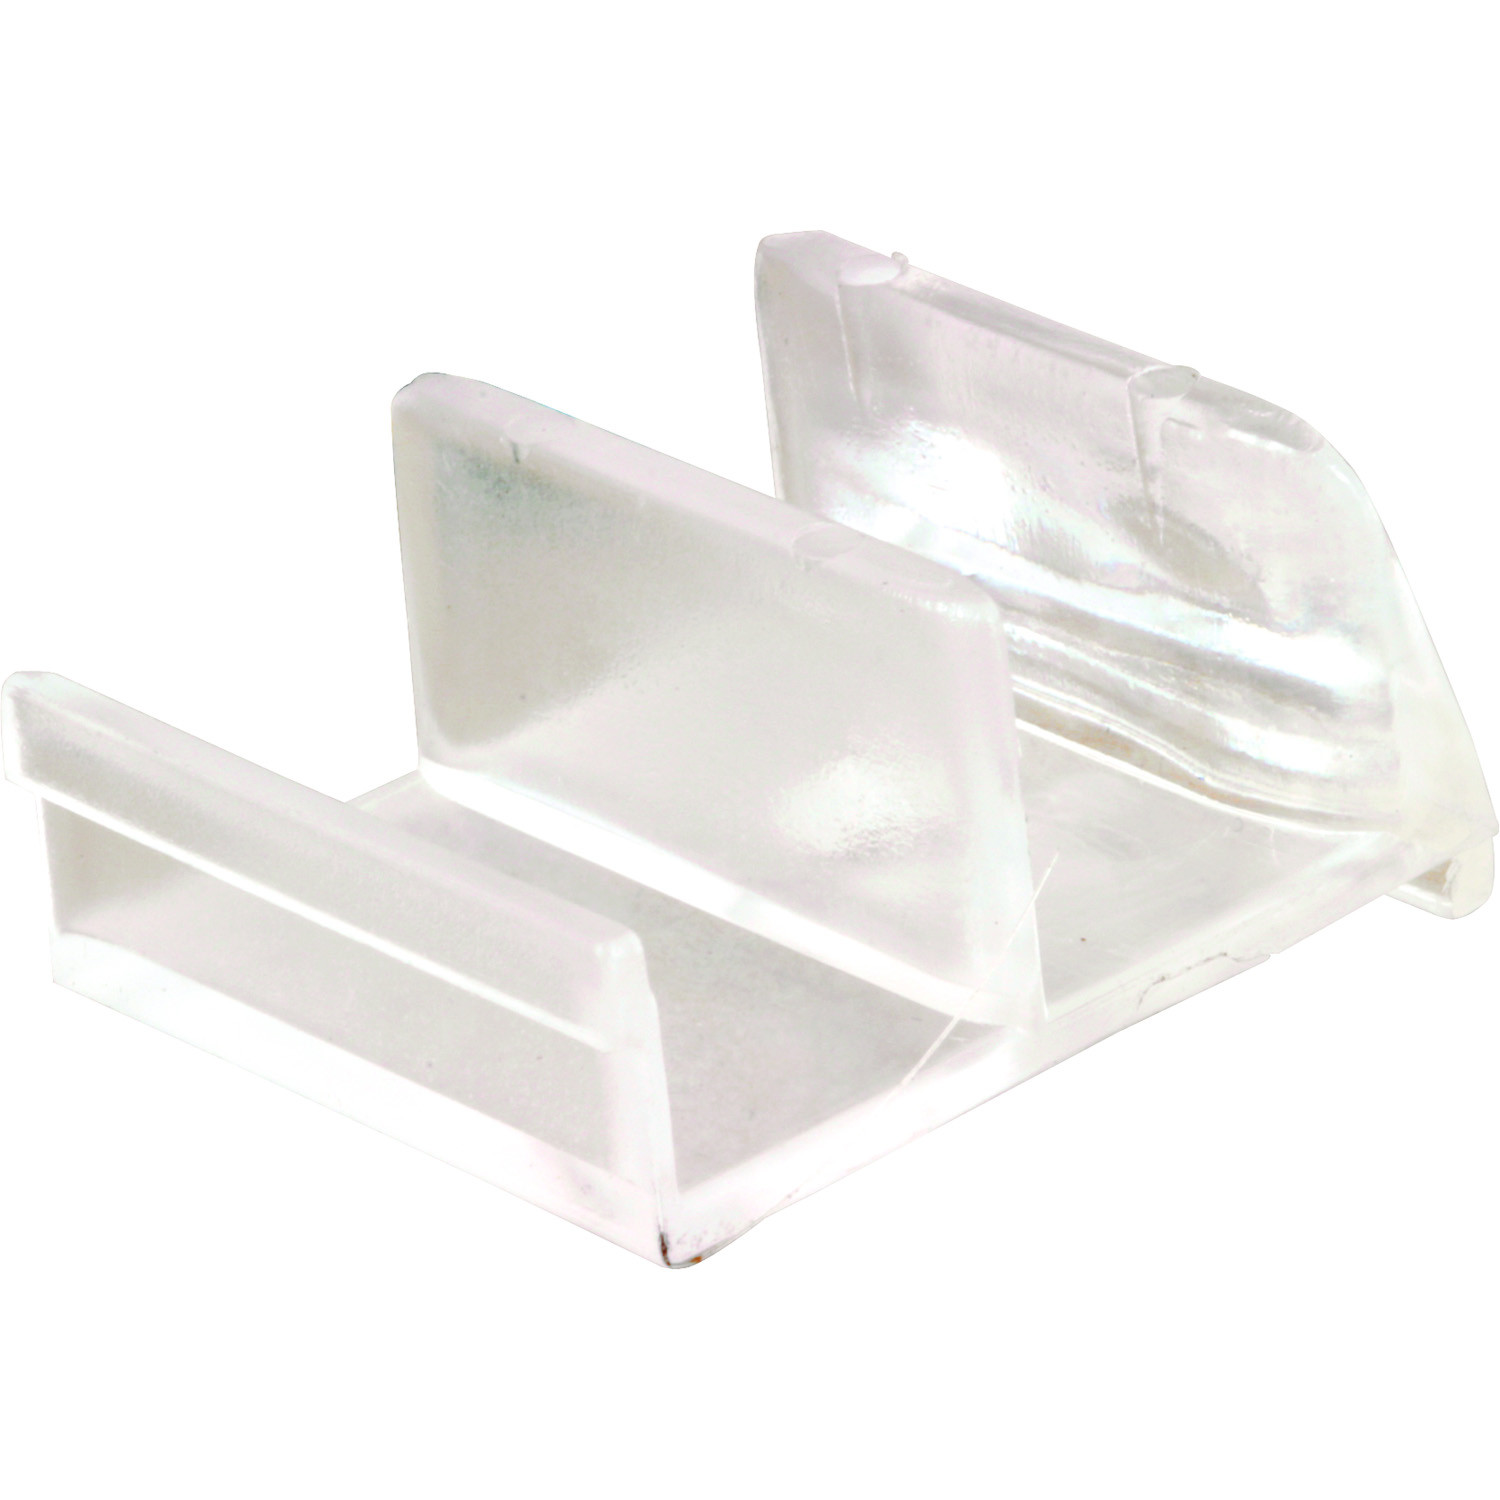 Prime Line M6111 193074 Clear Shower Door Bottom Guide 078874930747